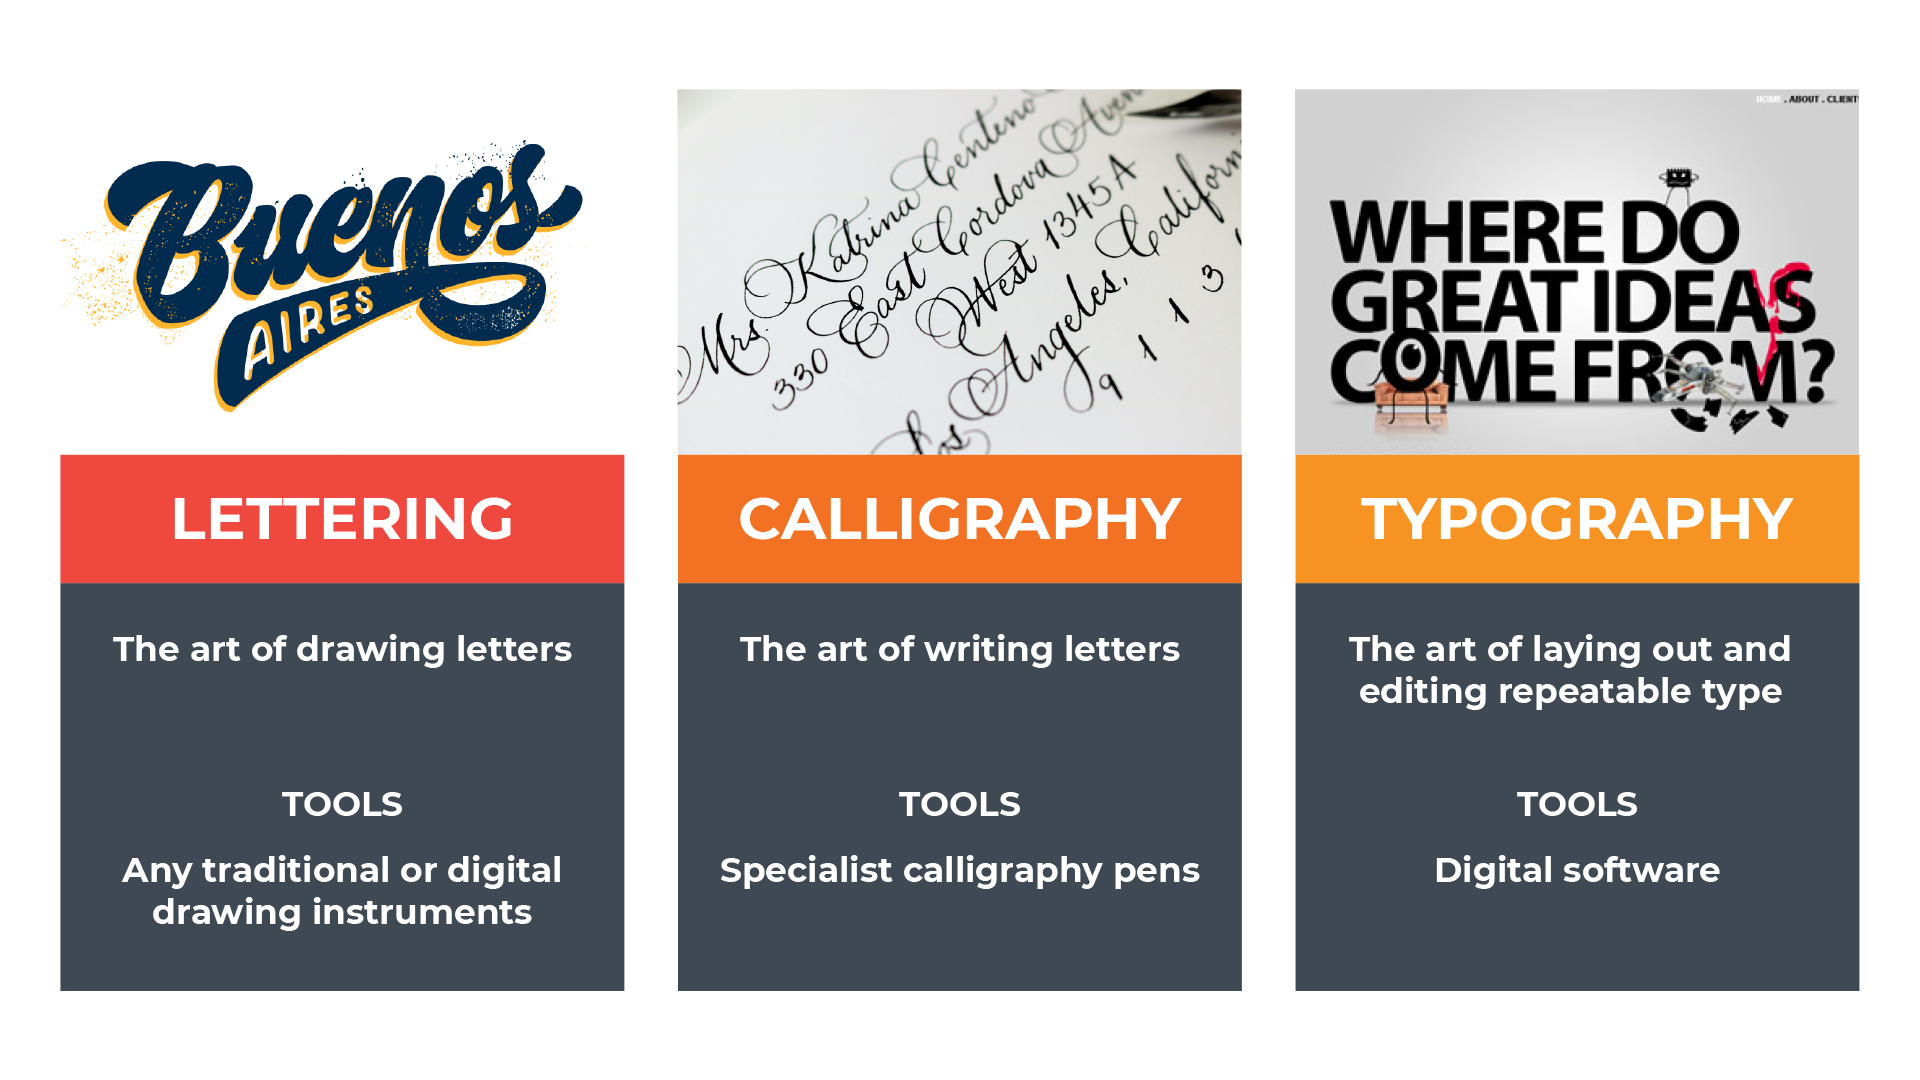 Chart showing differences between Lettering, Calligraphy and Typography